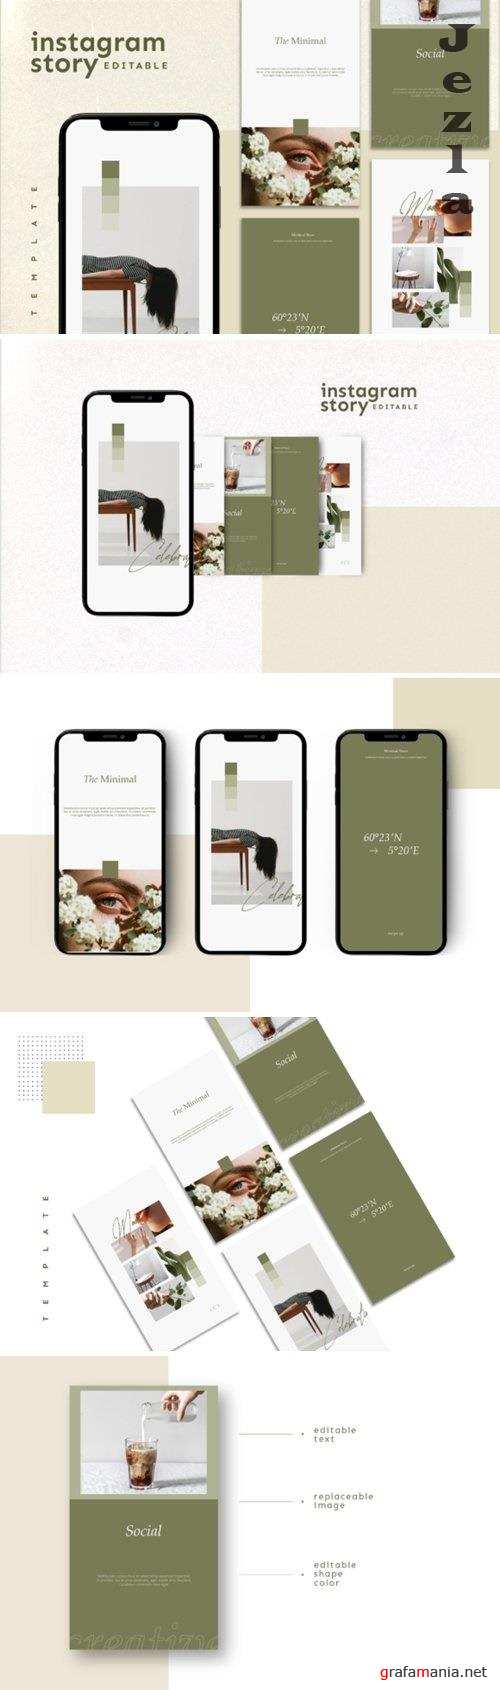 Instagram Story Template - 4755989